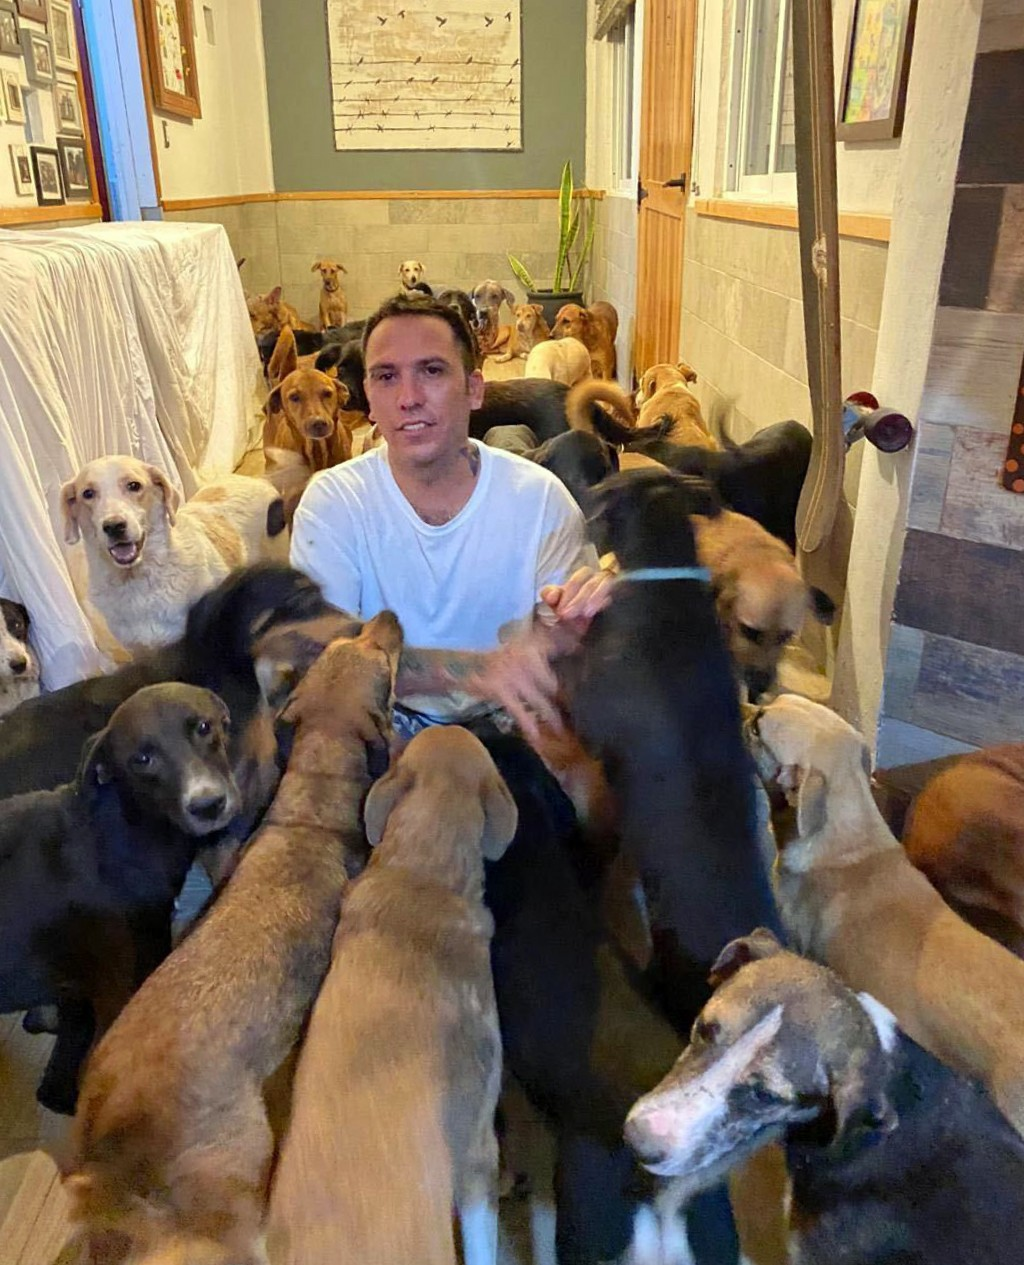 In this Oct. 7, 2020, photo provided by Daniela Rojas, Ricardo Pimentel plays with dogs that he sheltered at his home in Leona Vicario, Mexico, during...